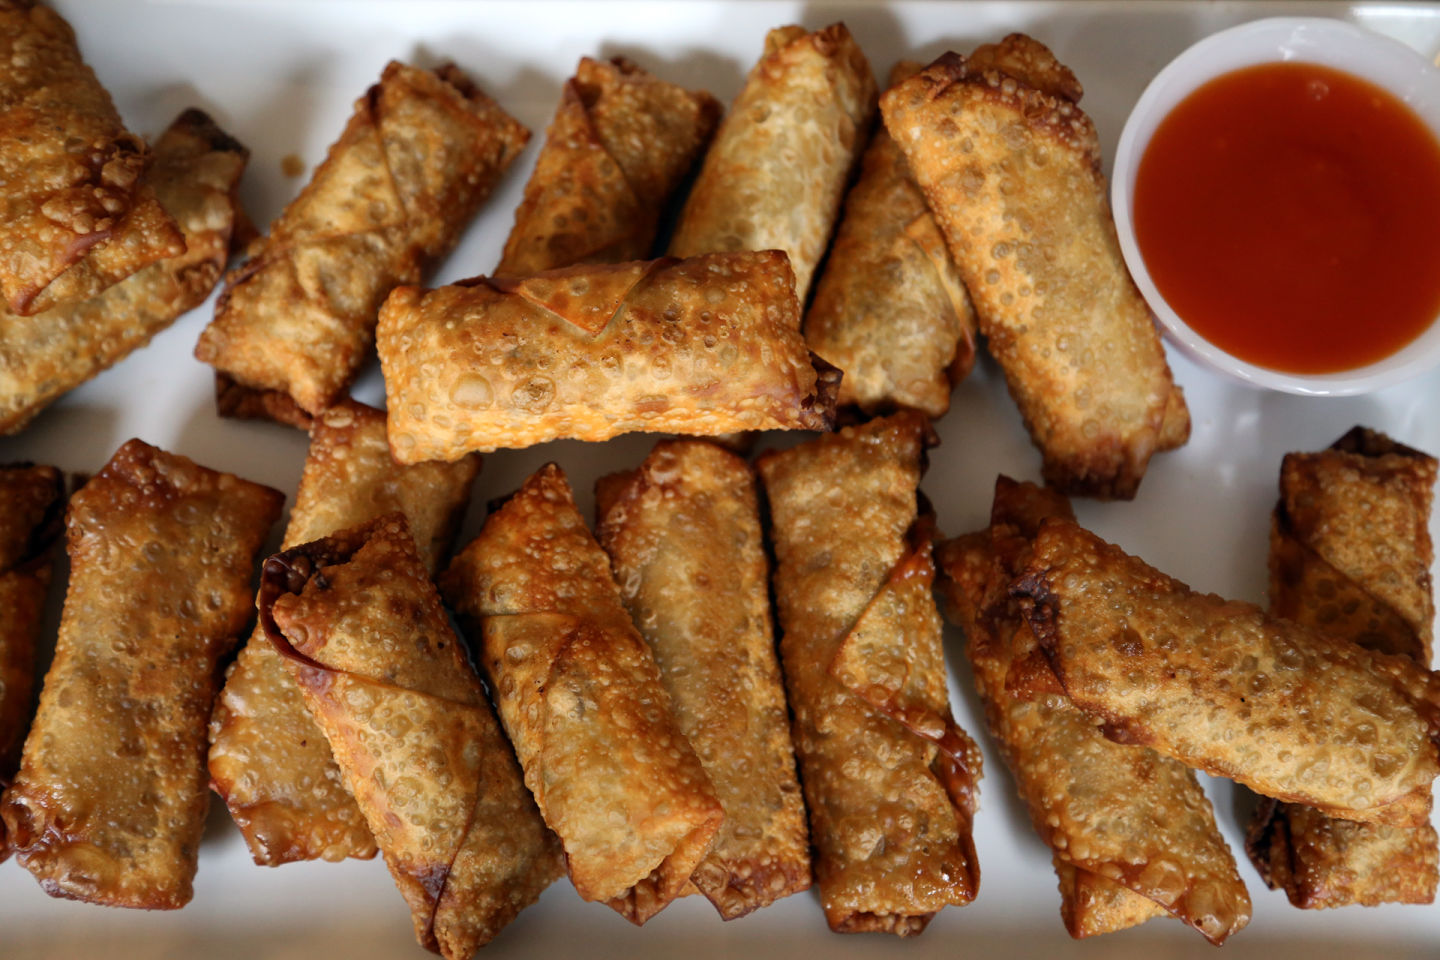 Get Your Super Bowl On: Mom's Chicken and Veggie Eggrolls